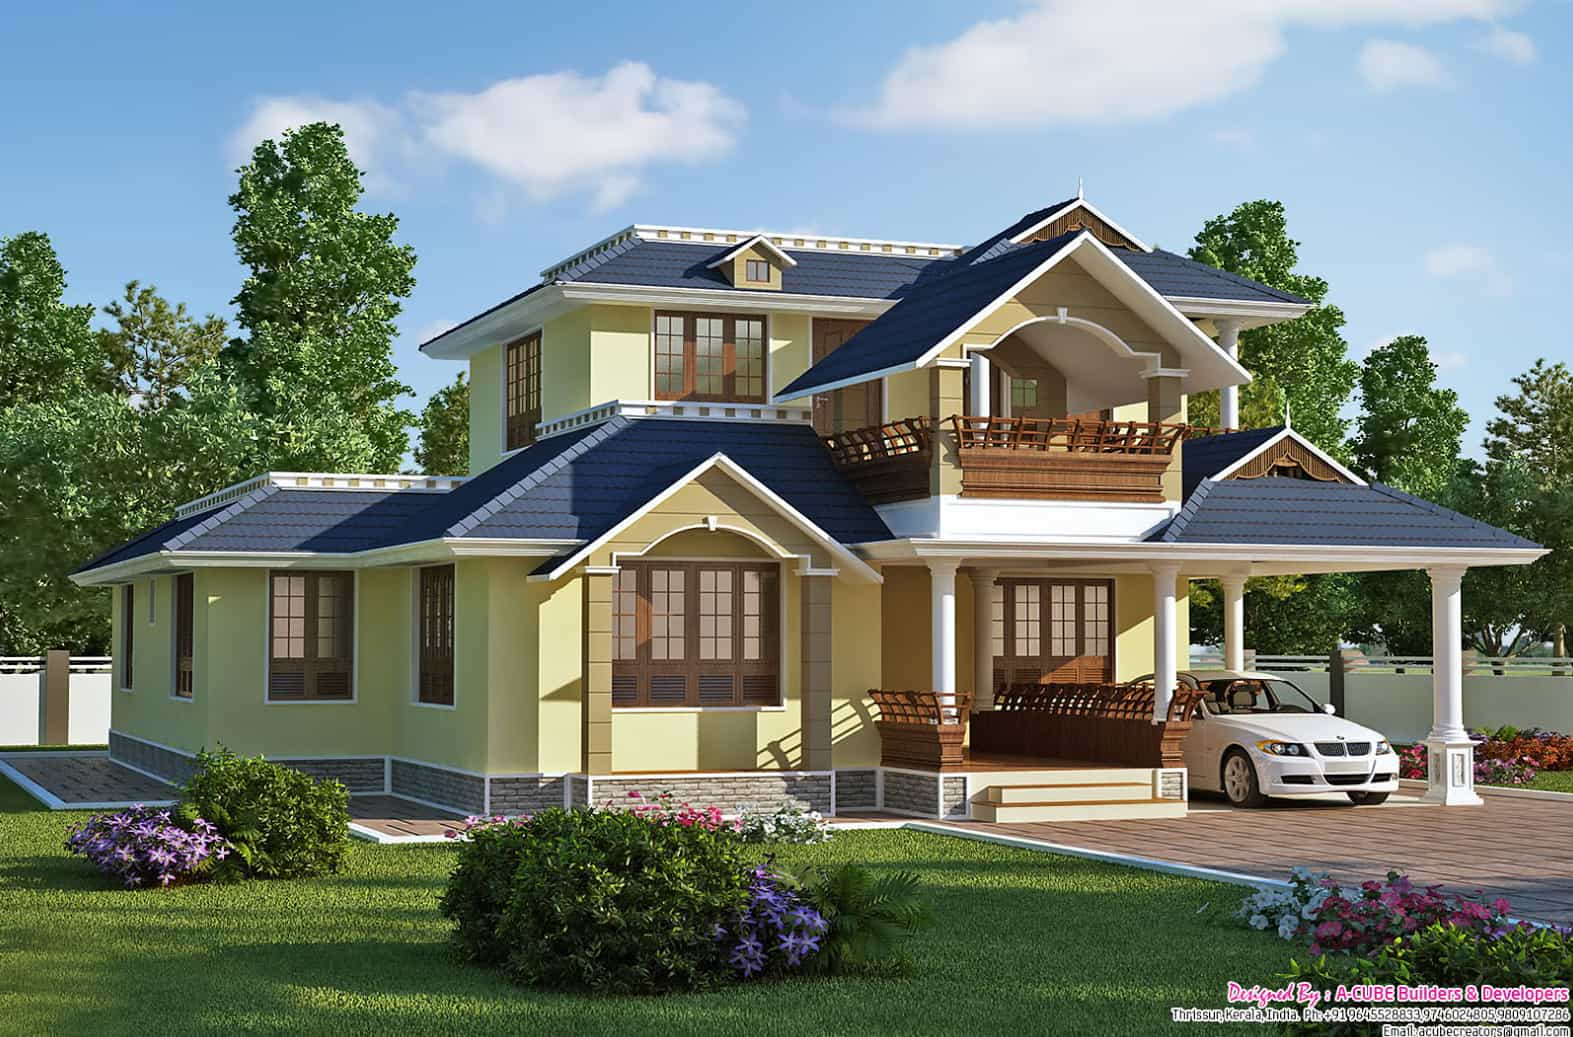 Roof Design Ideas: Exquisite Sloping Roof Villa Design